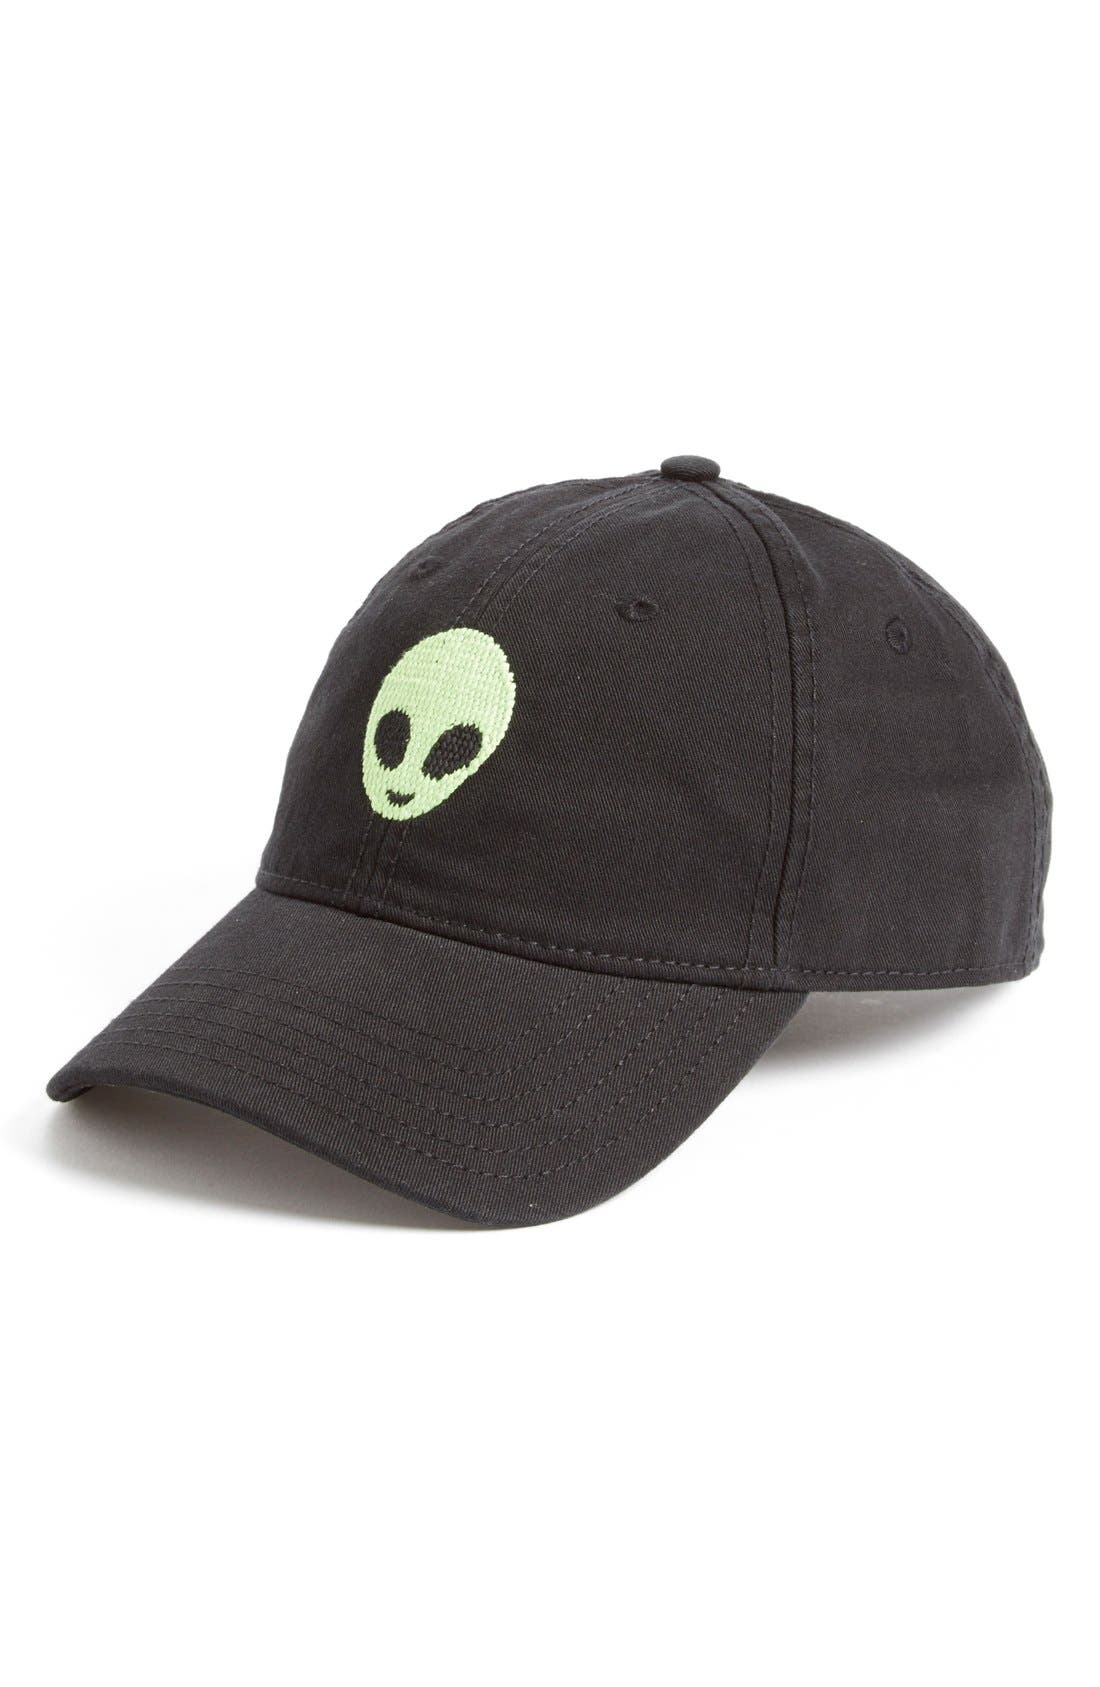 Alternate Image 1 Selected - Opening Ceremony 'Alien' Cap